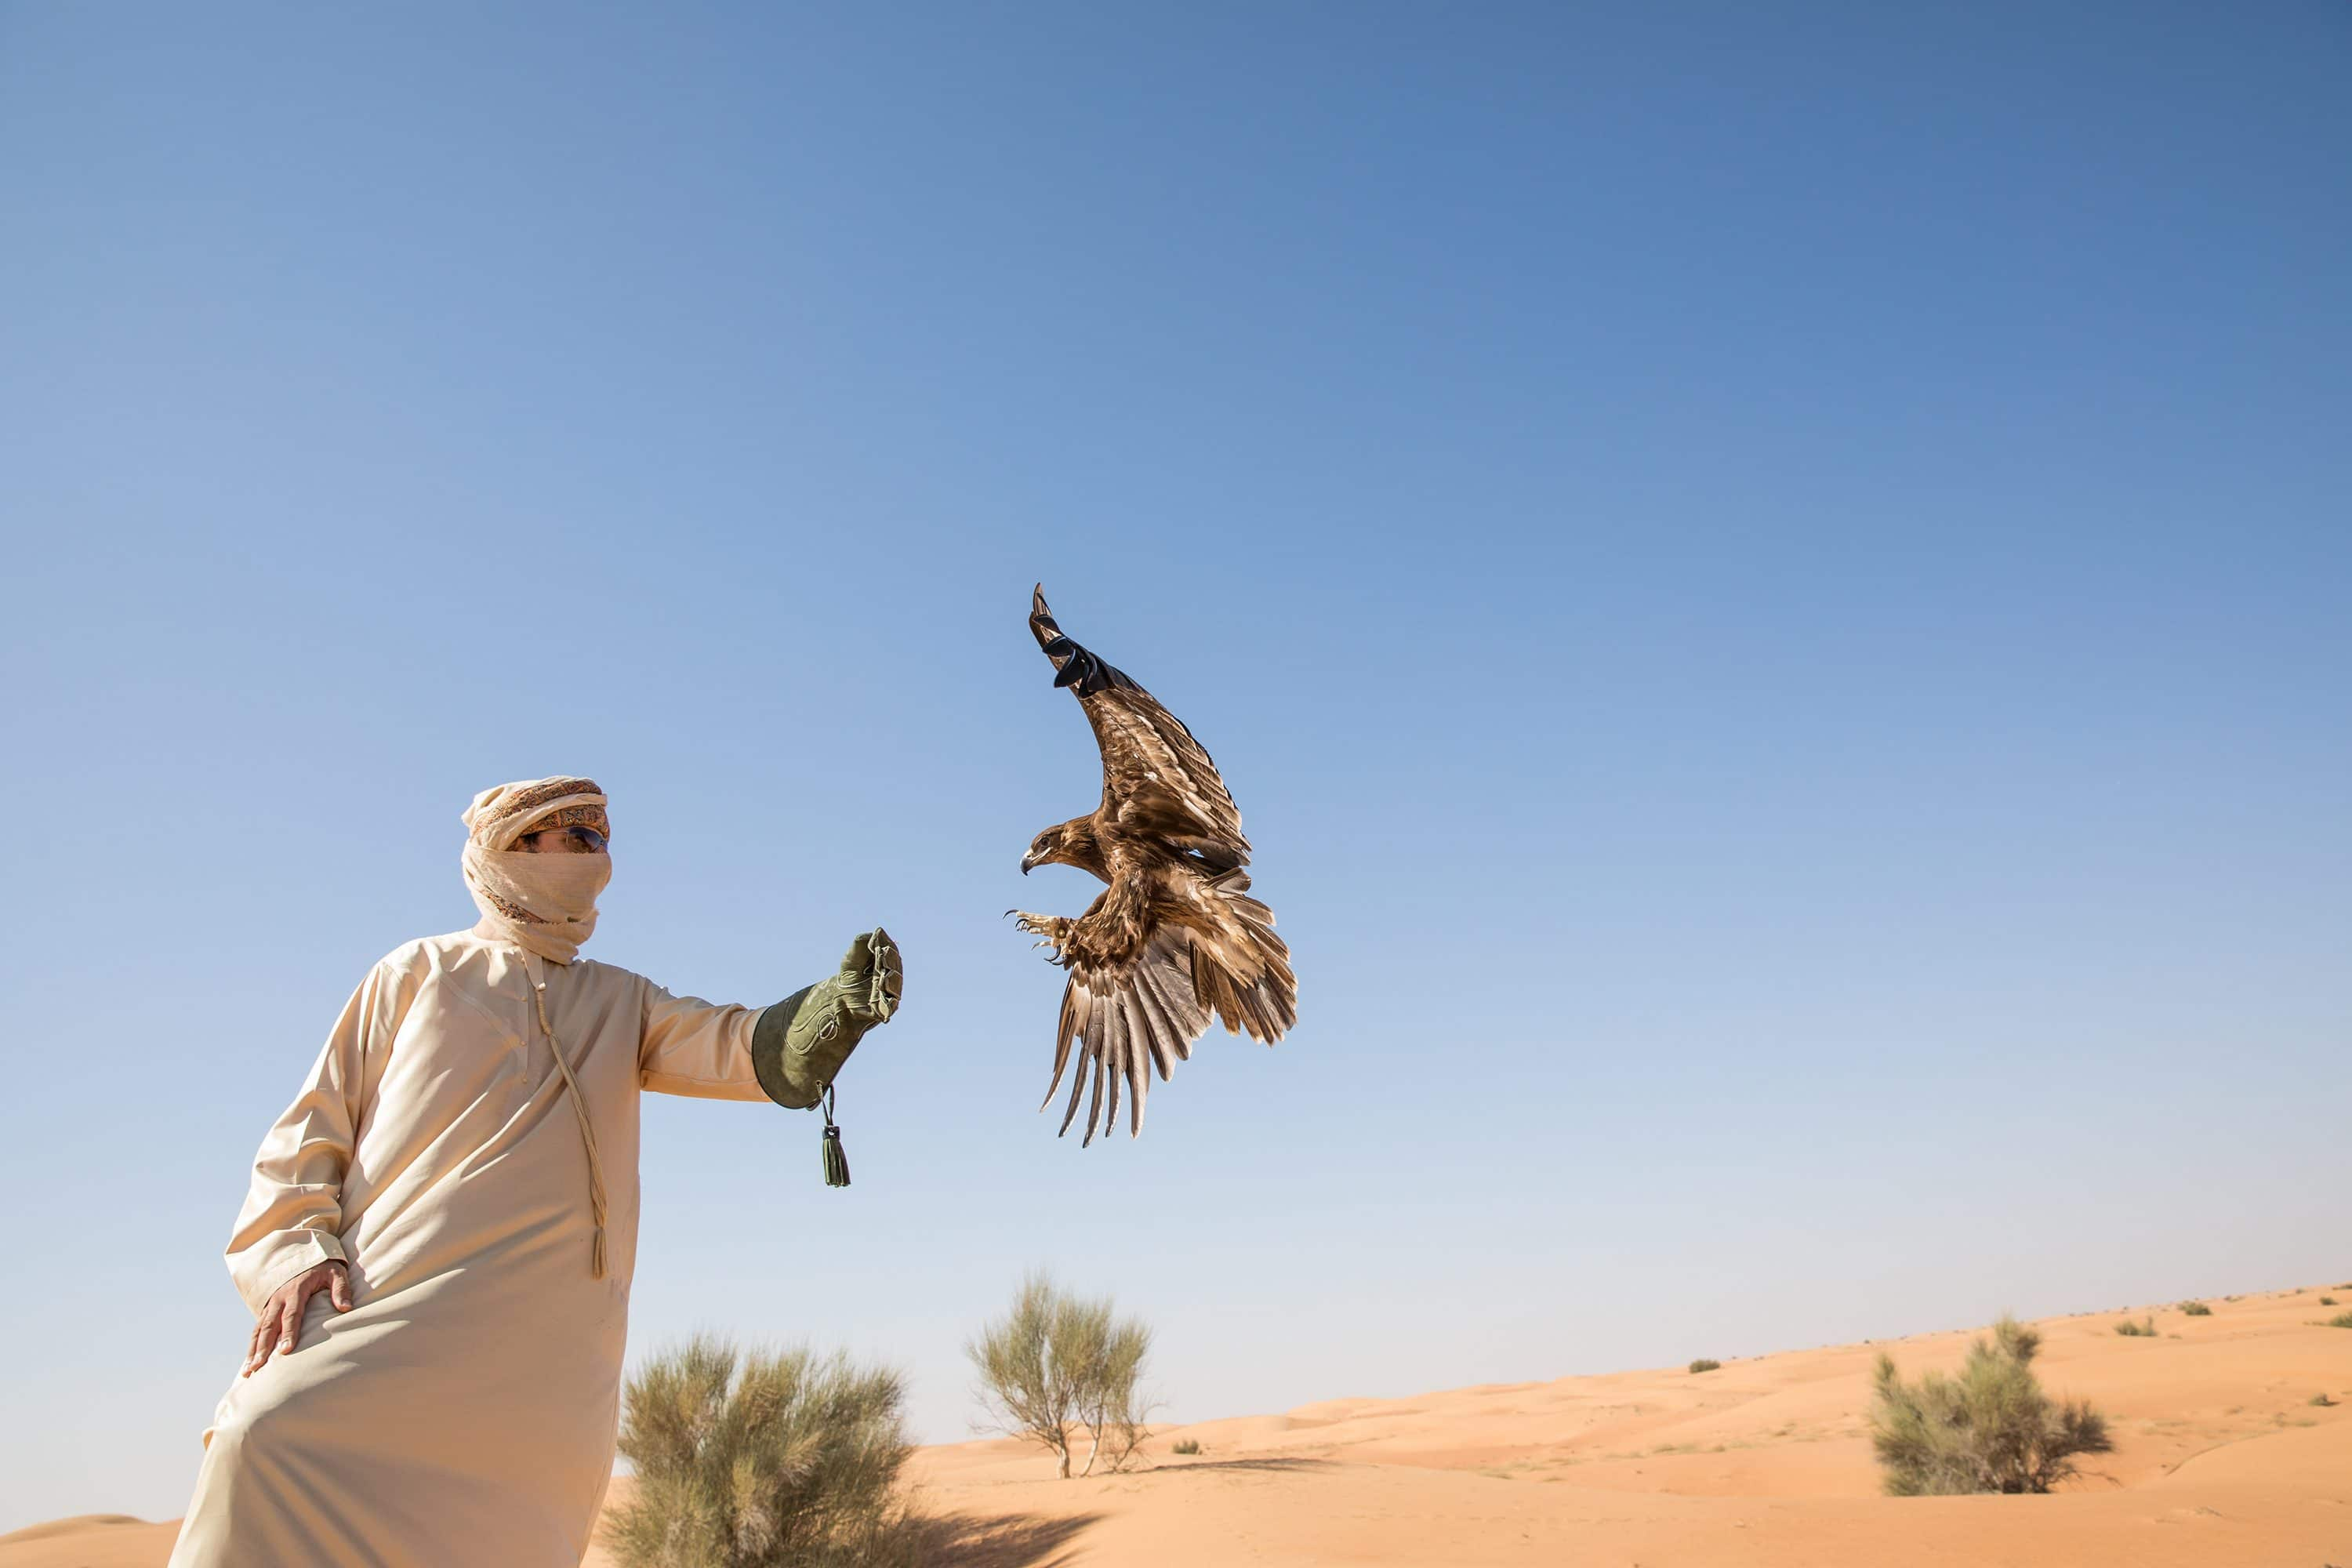 Trainer with falcon in desert